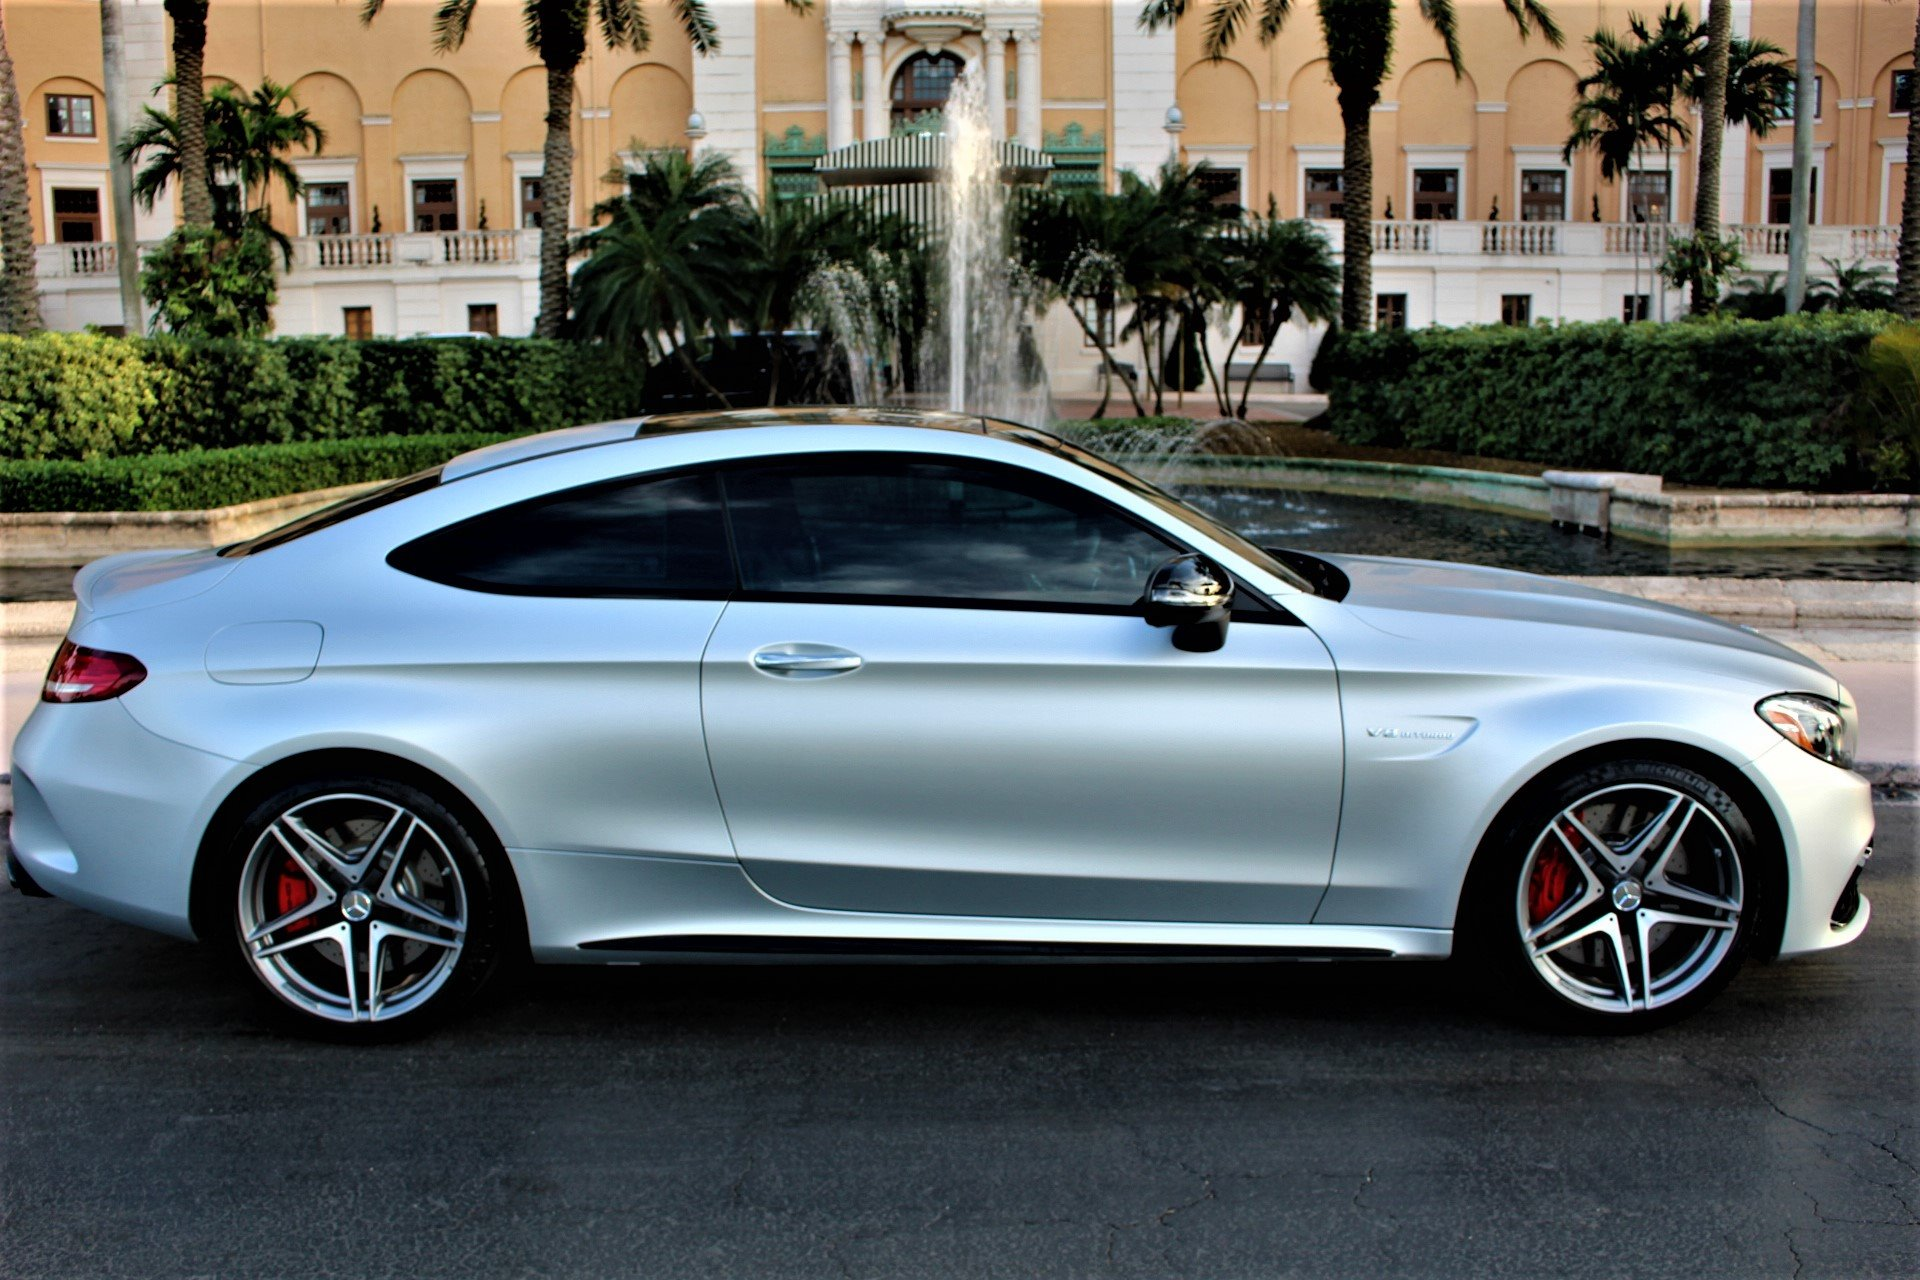 Used 2018 Mercedes-Benz C-Class AMG C 63 S for sale Sold at The Gables Sports Cars in Miami FL 33146 2